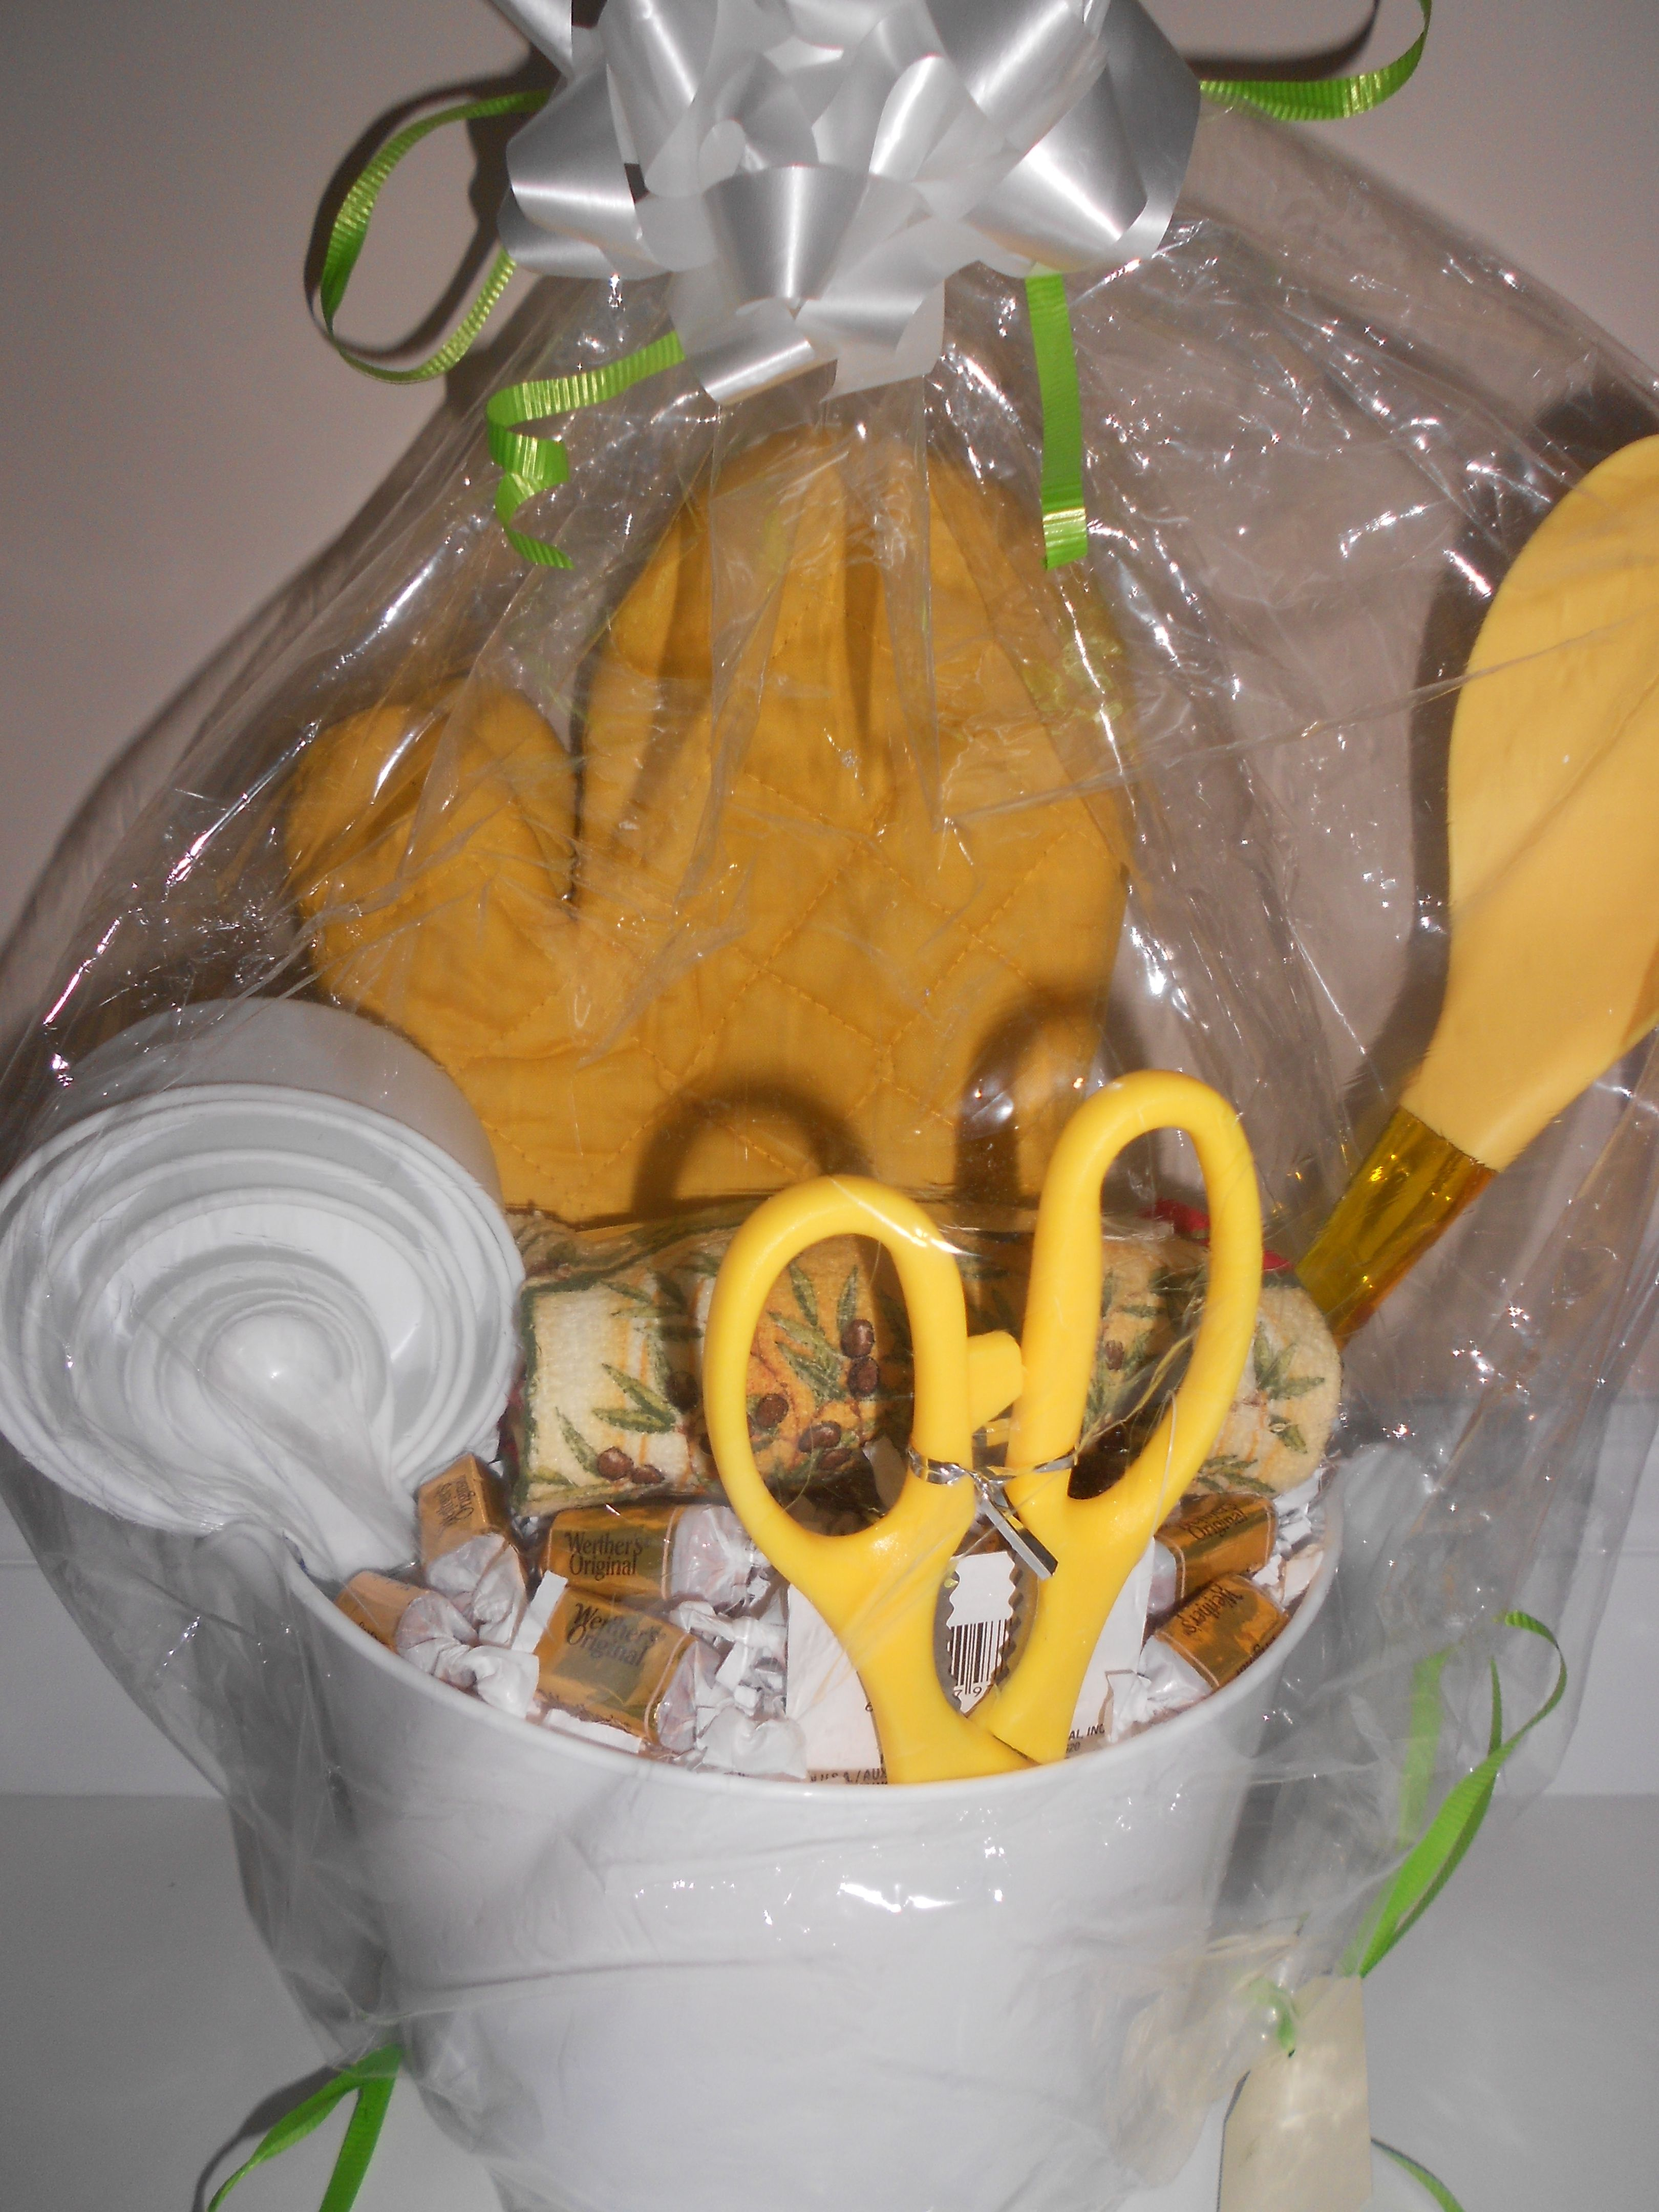 Best Gift For New House Housewarming Gift Basket Perfect For Any New Home Buyer